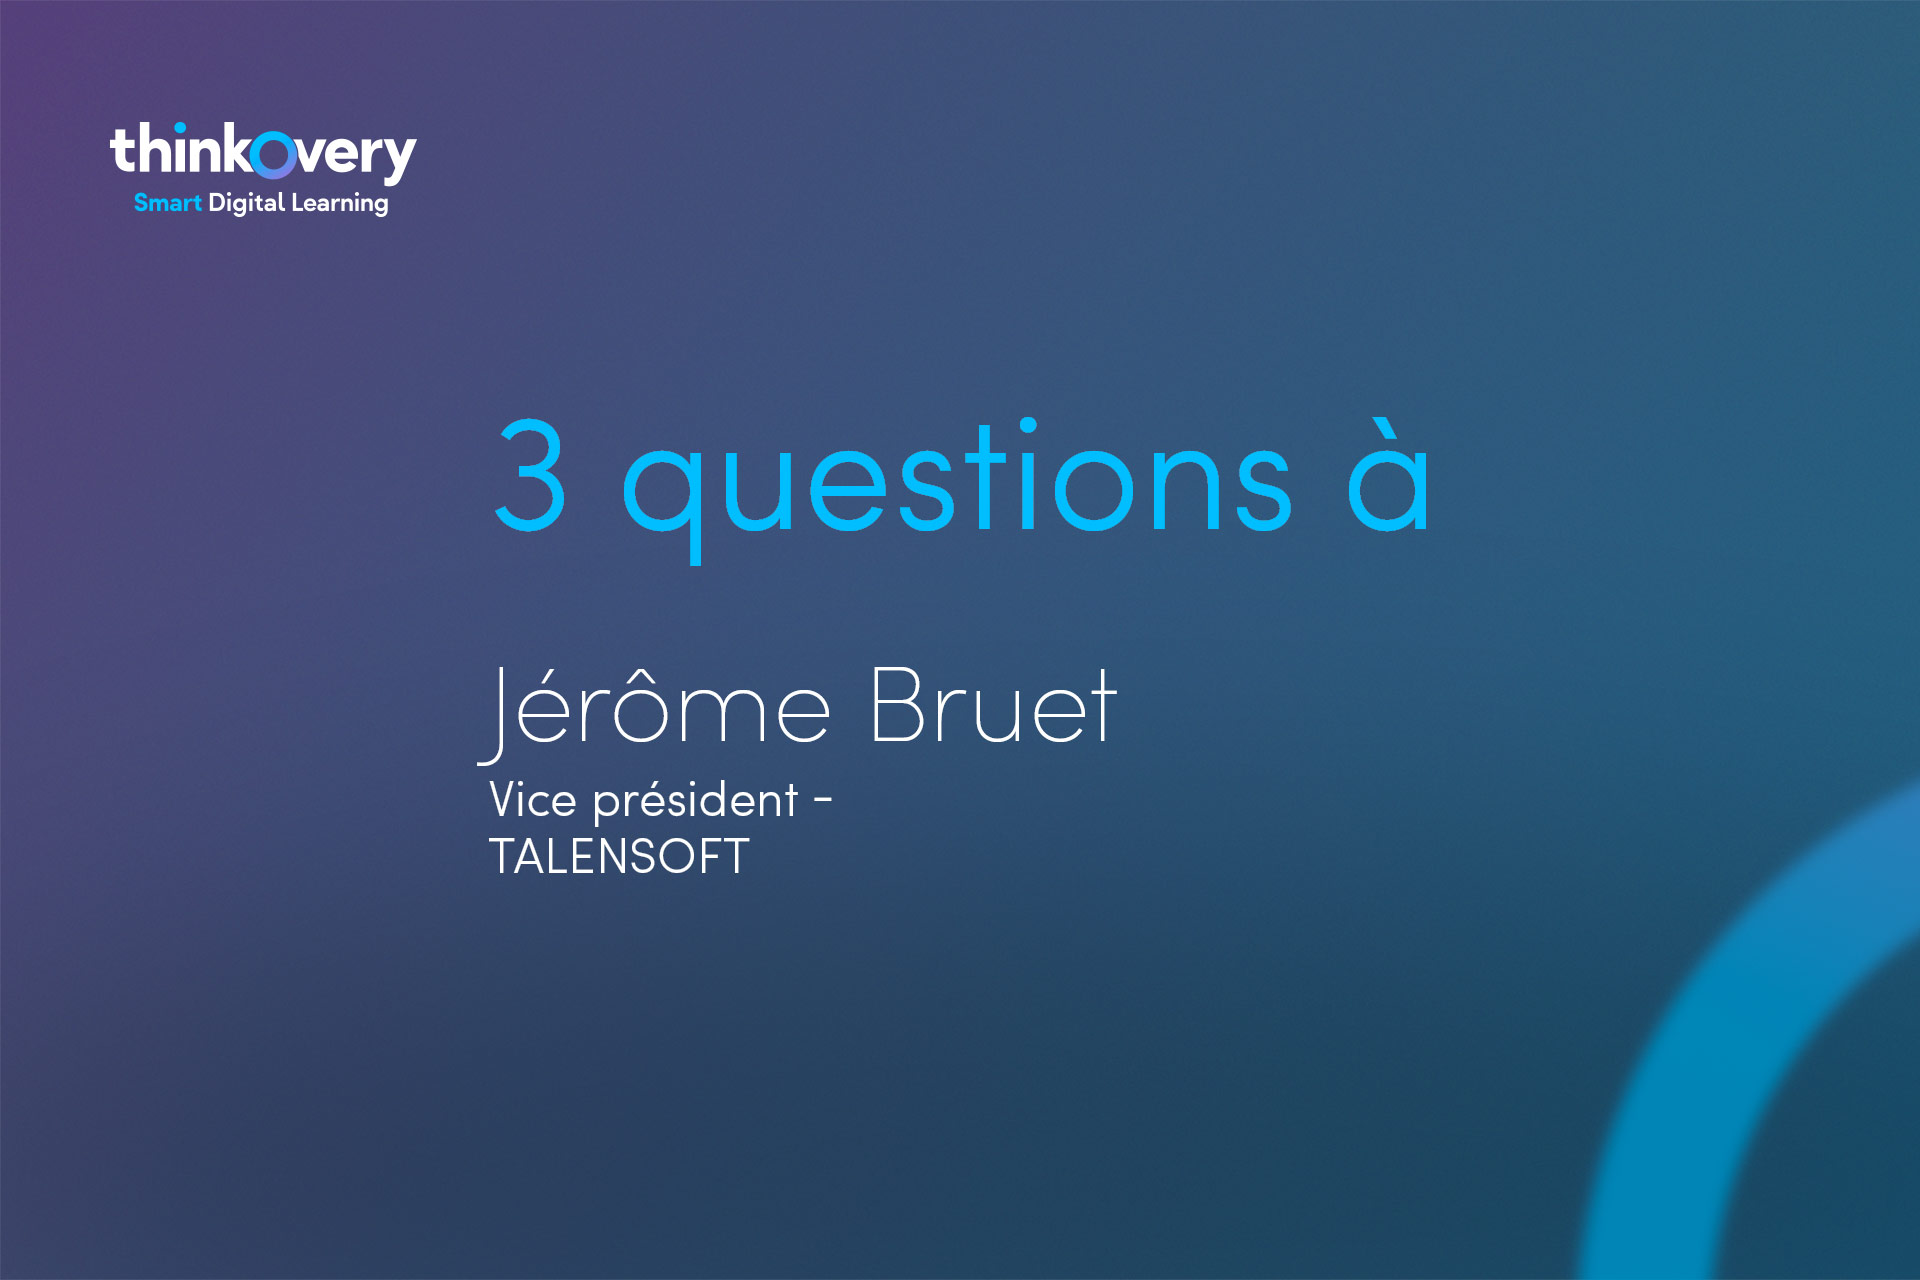 Jerome Bruet repond à nos questions concernant le digital learning